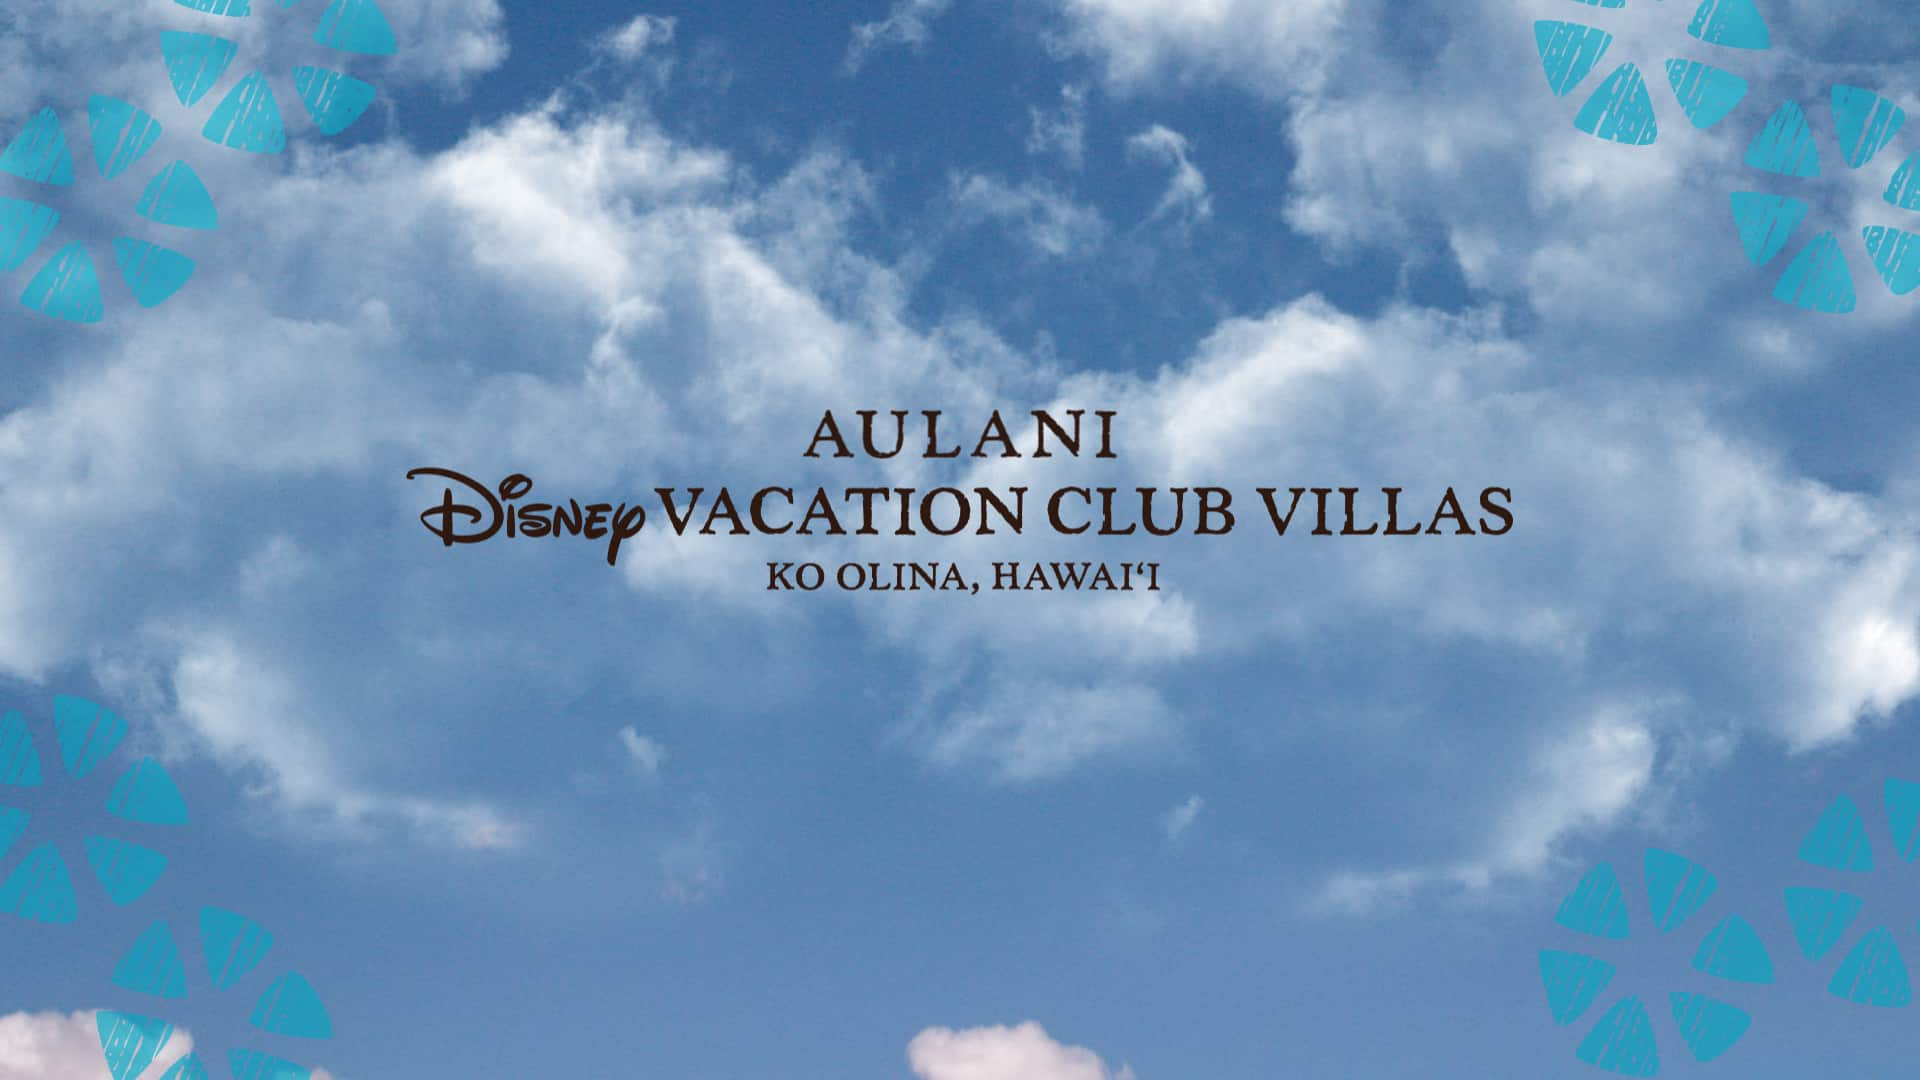 Aulani Hawaii Vacation Destination  Timeshare  Disney